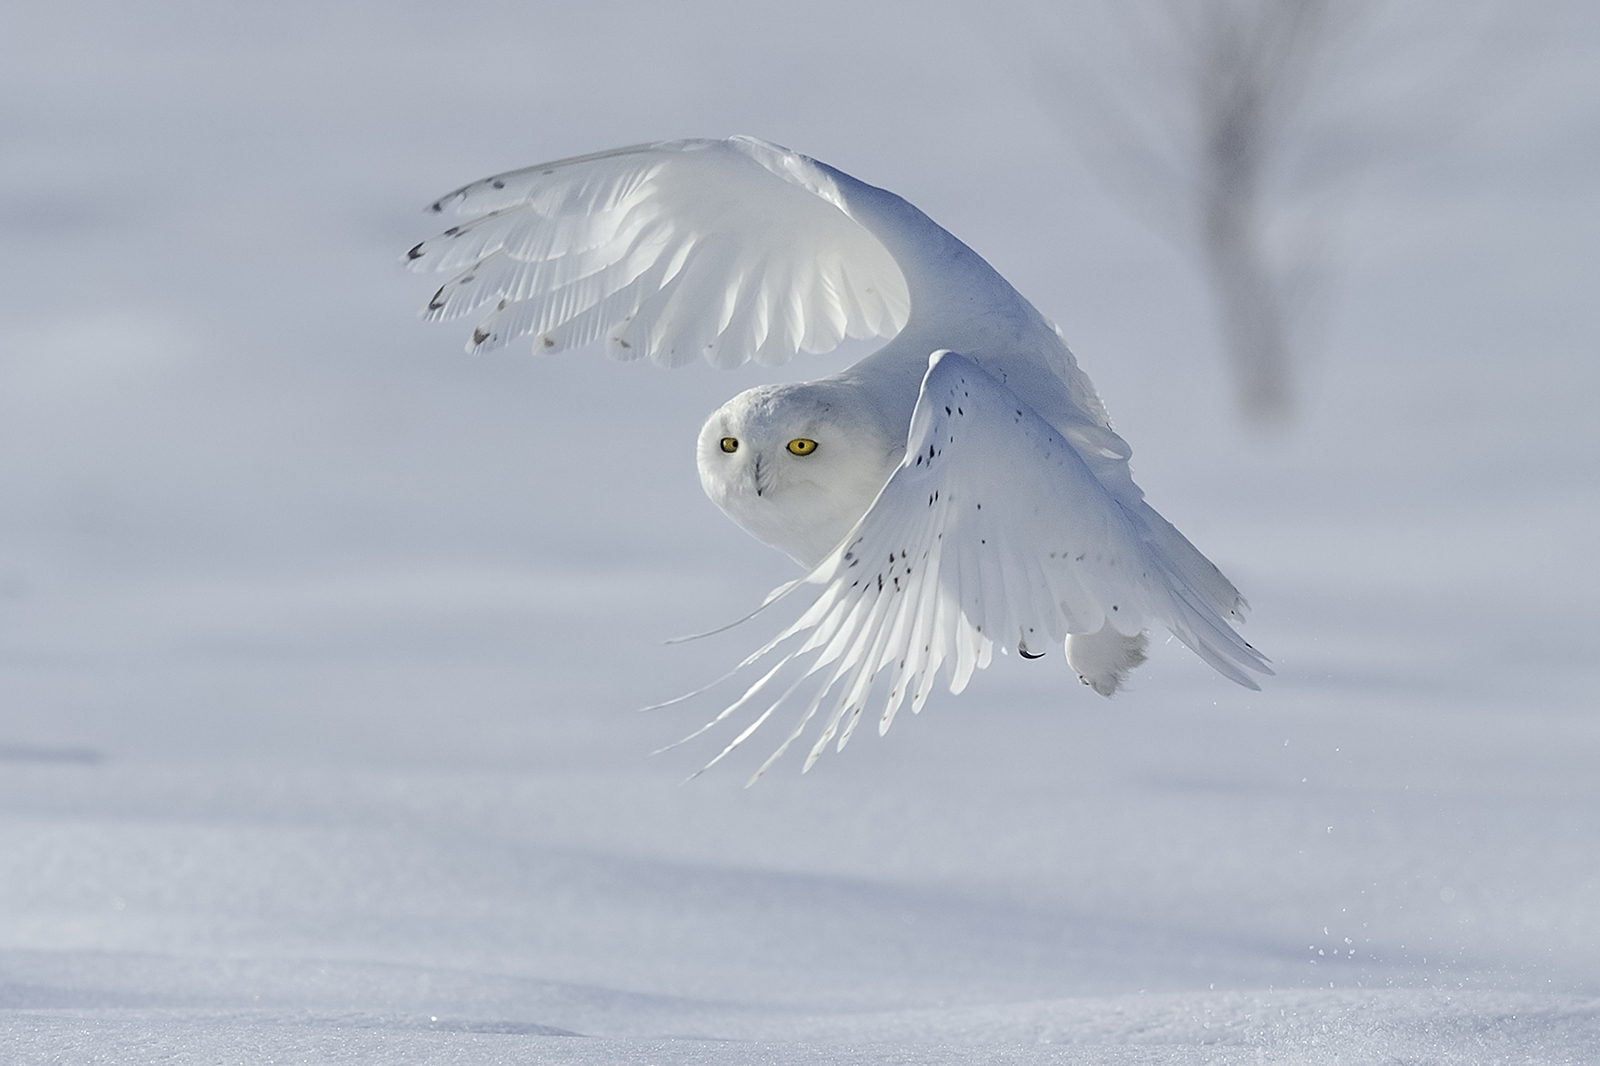 snowy owl in flight, terrebonne Que.